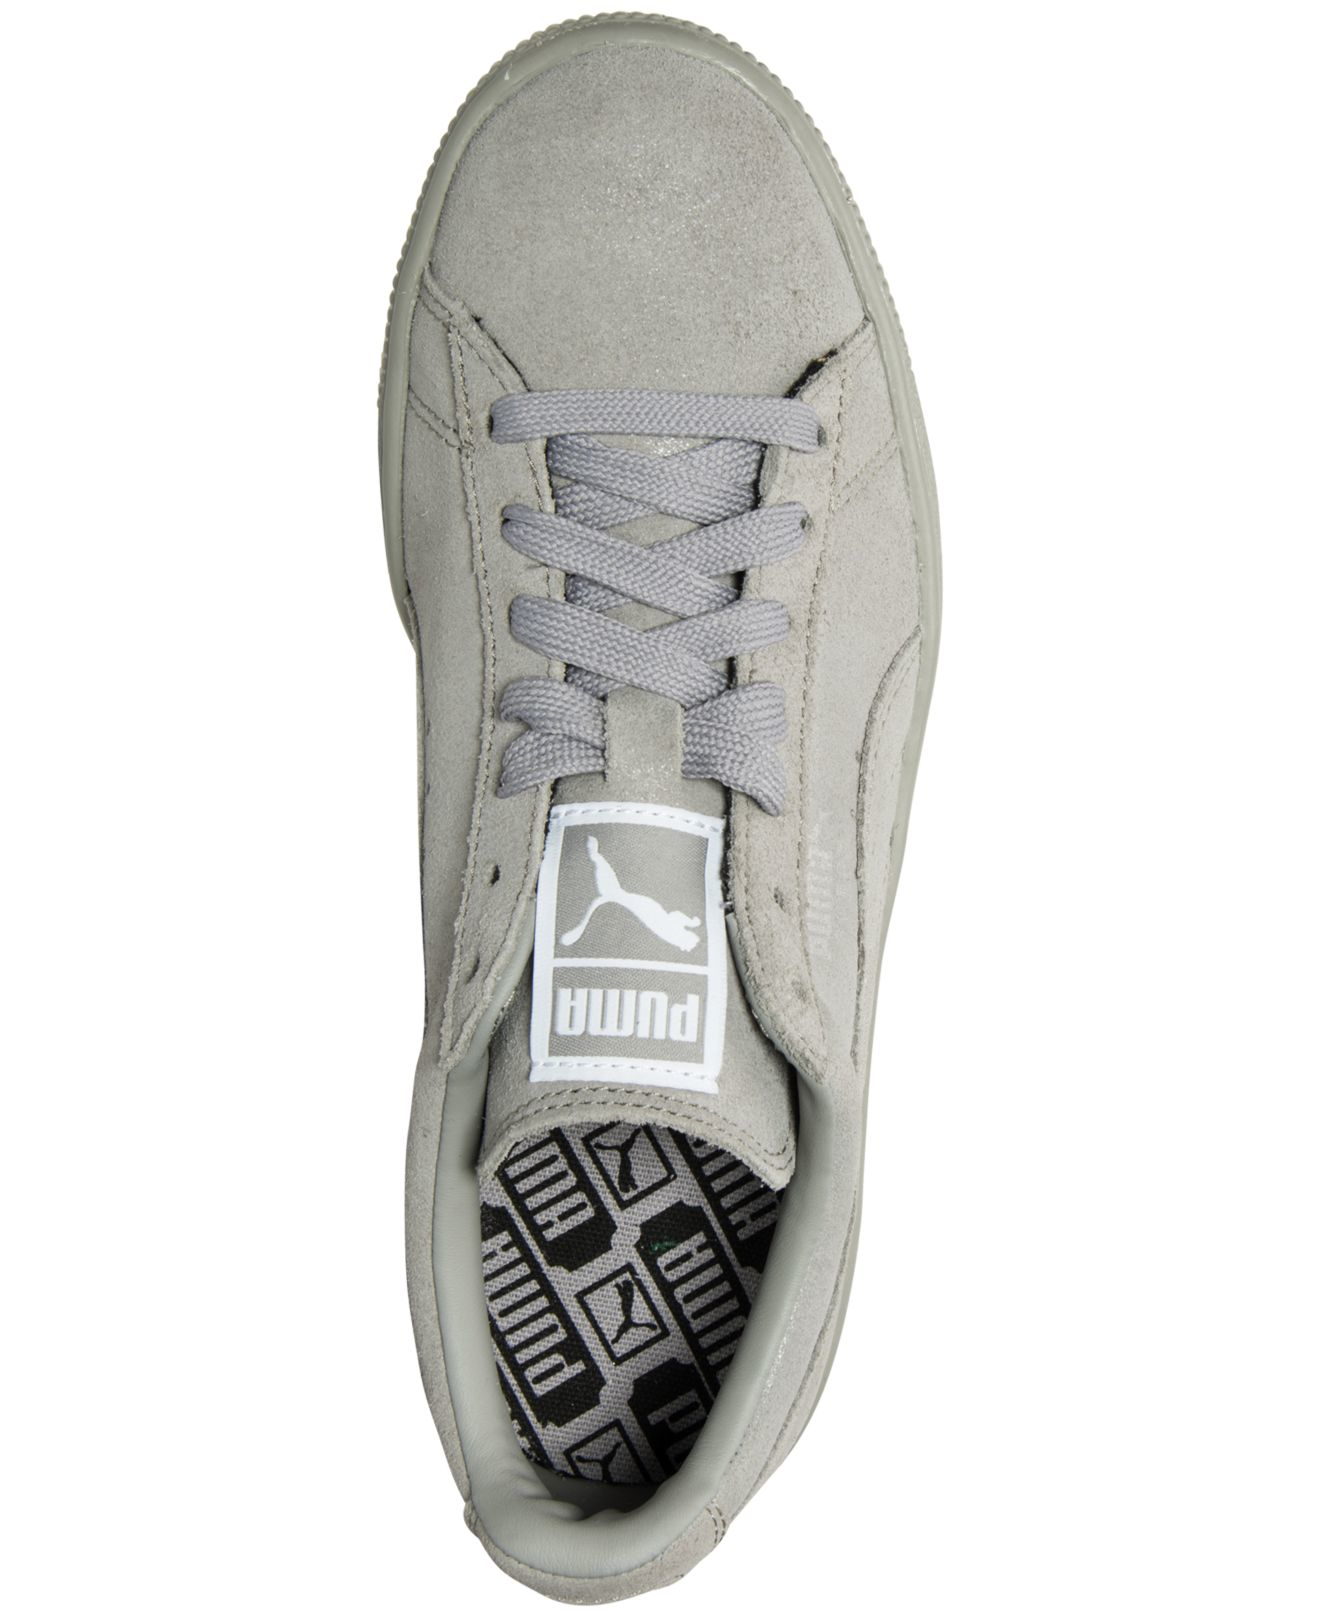 Lyst - PUMA Women s Suede Classic Matte   Shine Casual Sneakers From Finish  Line in Gray 32714316d1